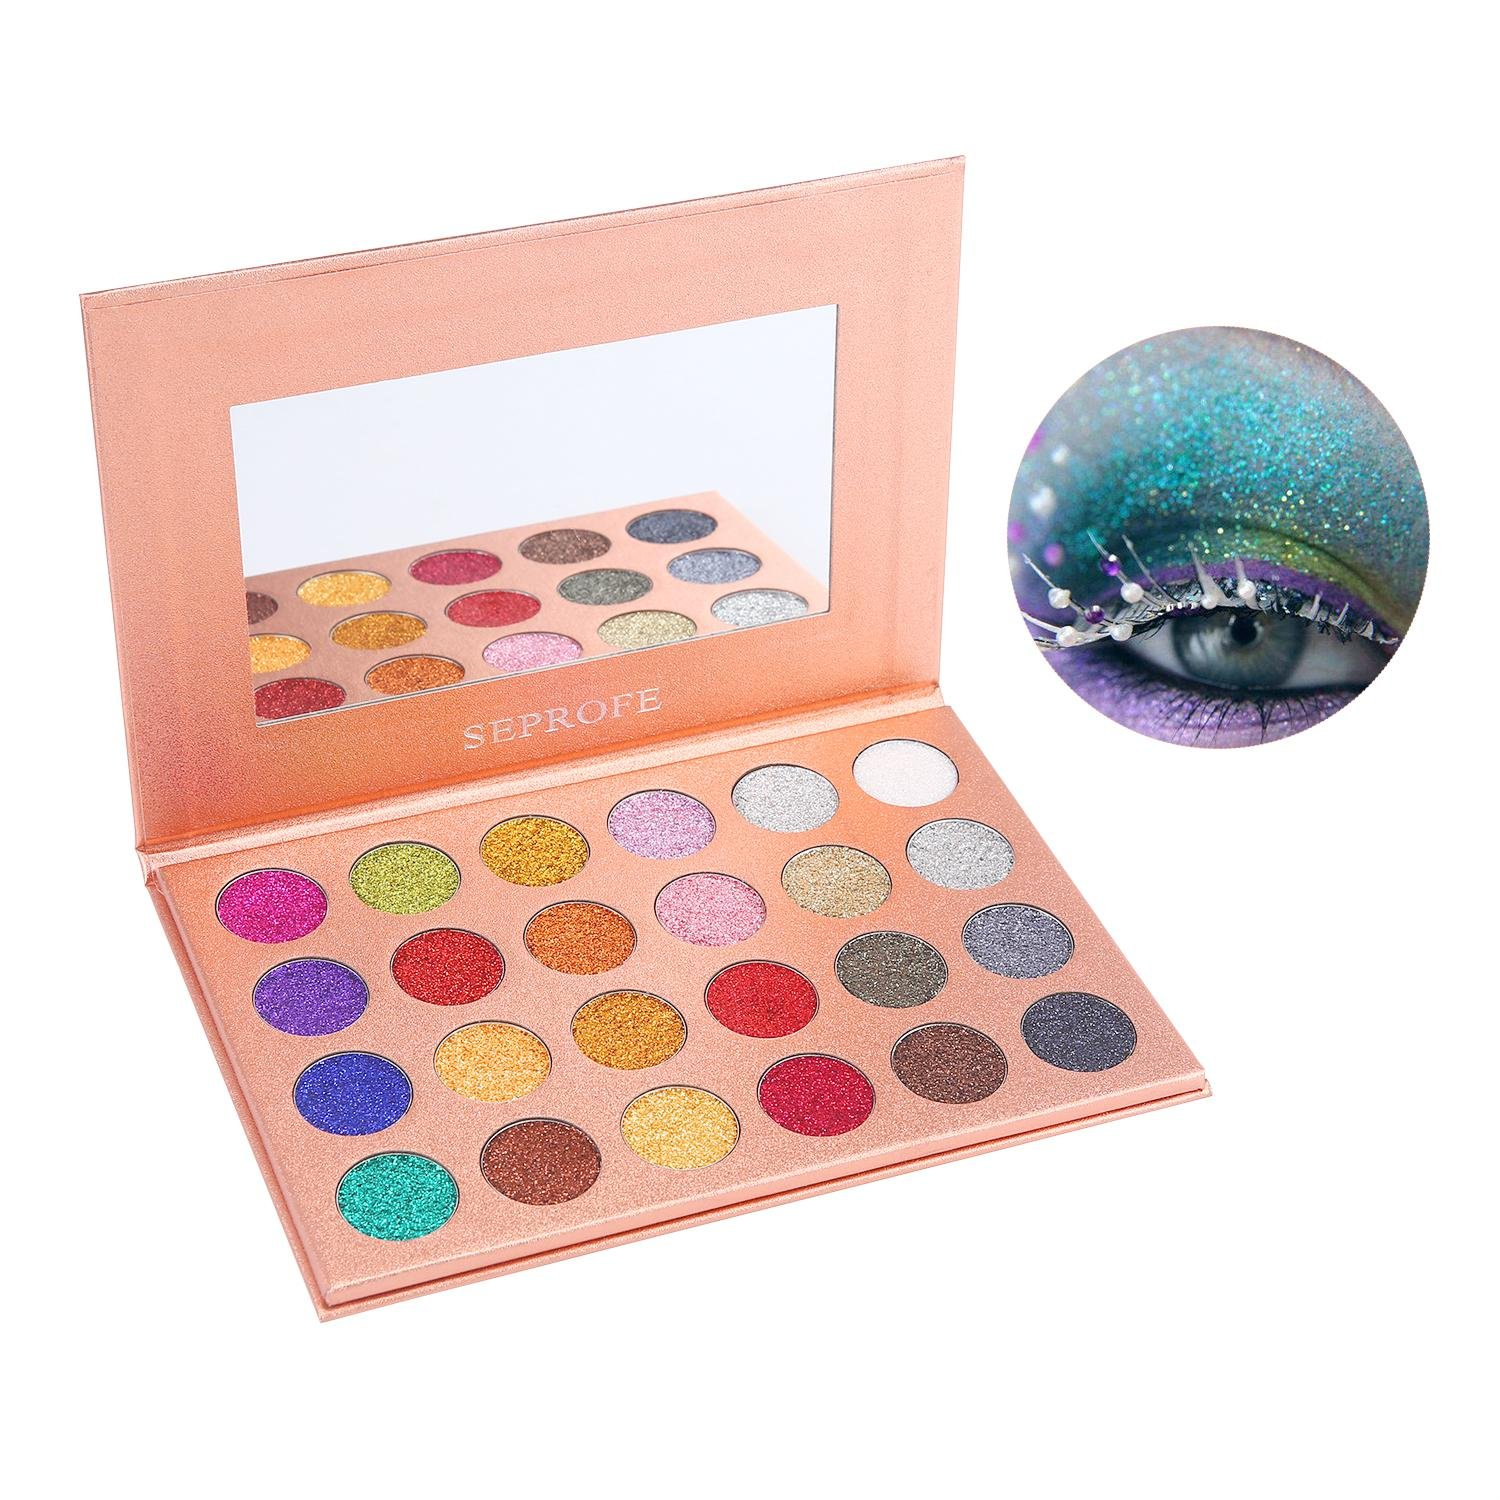 Ultra-fine Pressed Eye Shadow Palette - Aolvo 24 Colors High Pigment, Durable,Longlasting And Waterproof, Professional Diamond Giltter Eye Shadow Pallet Suitable For Women